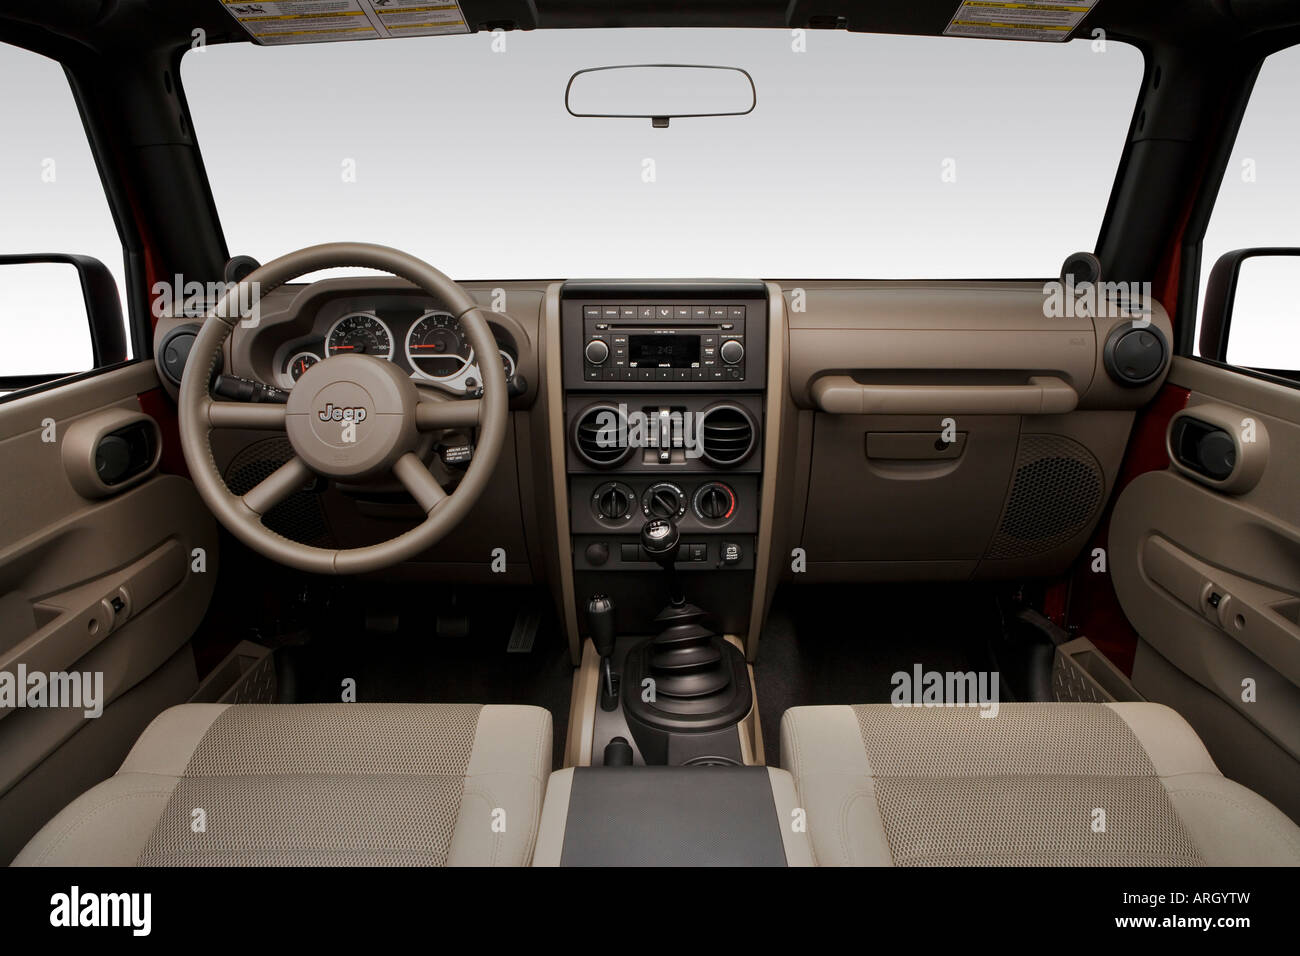 2007 jeep wrangler unlimited sahara in red dashboard center console gear shifter view